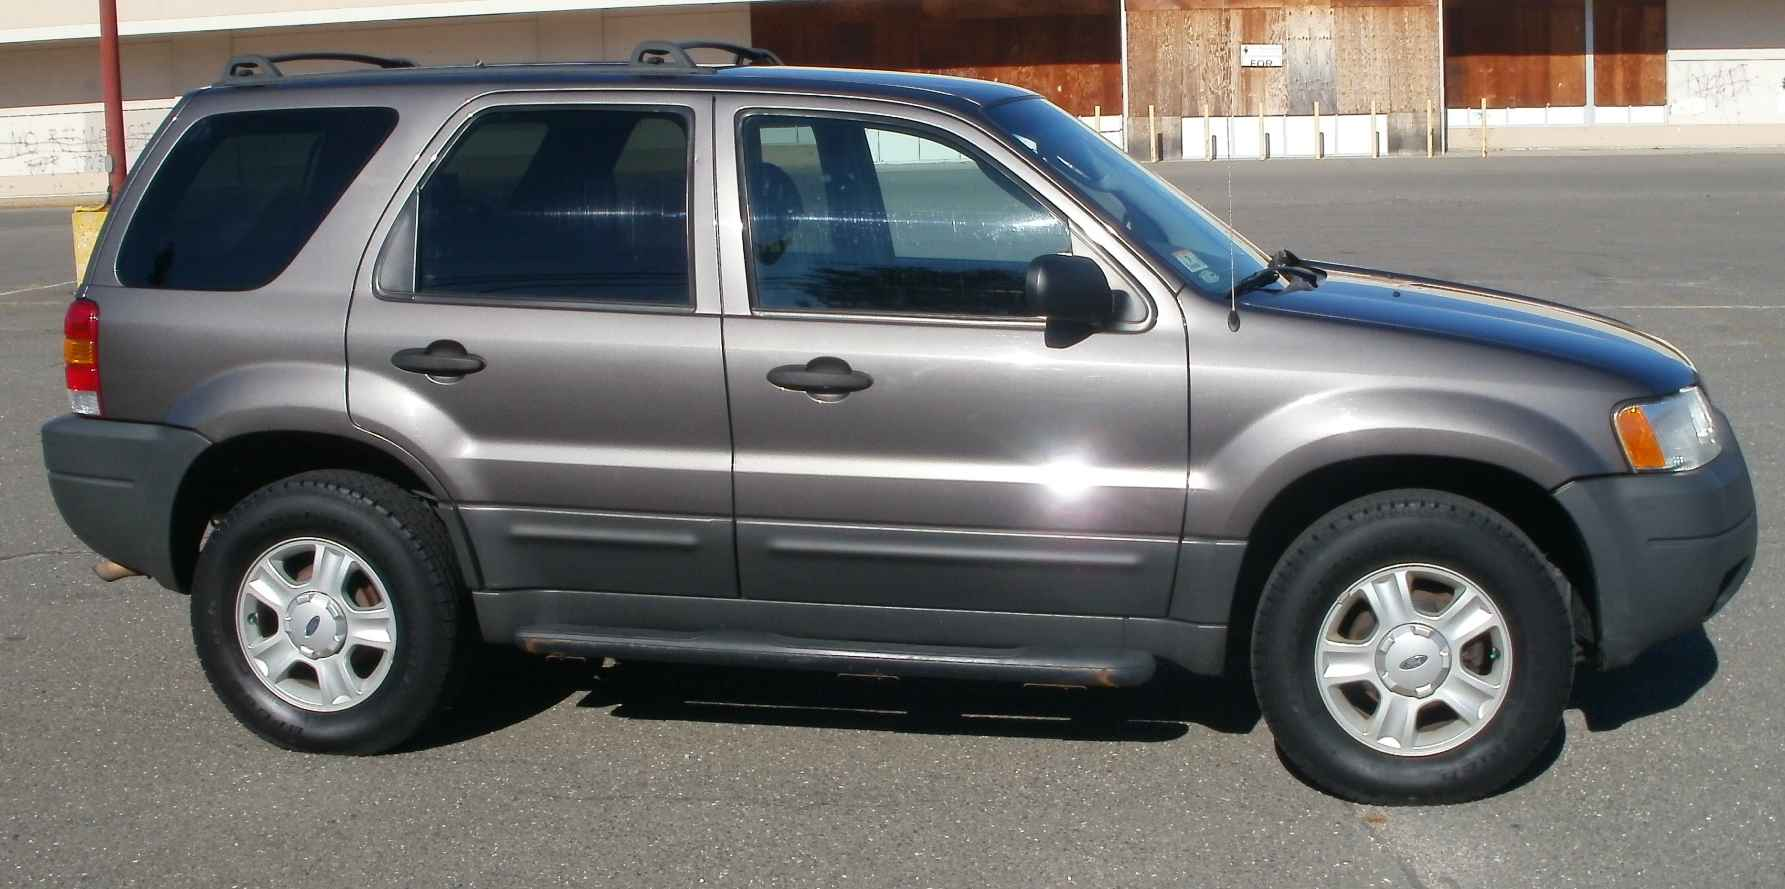 2003 Ford Escape - Partsopen